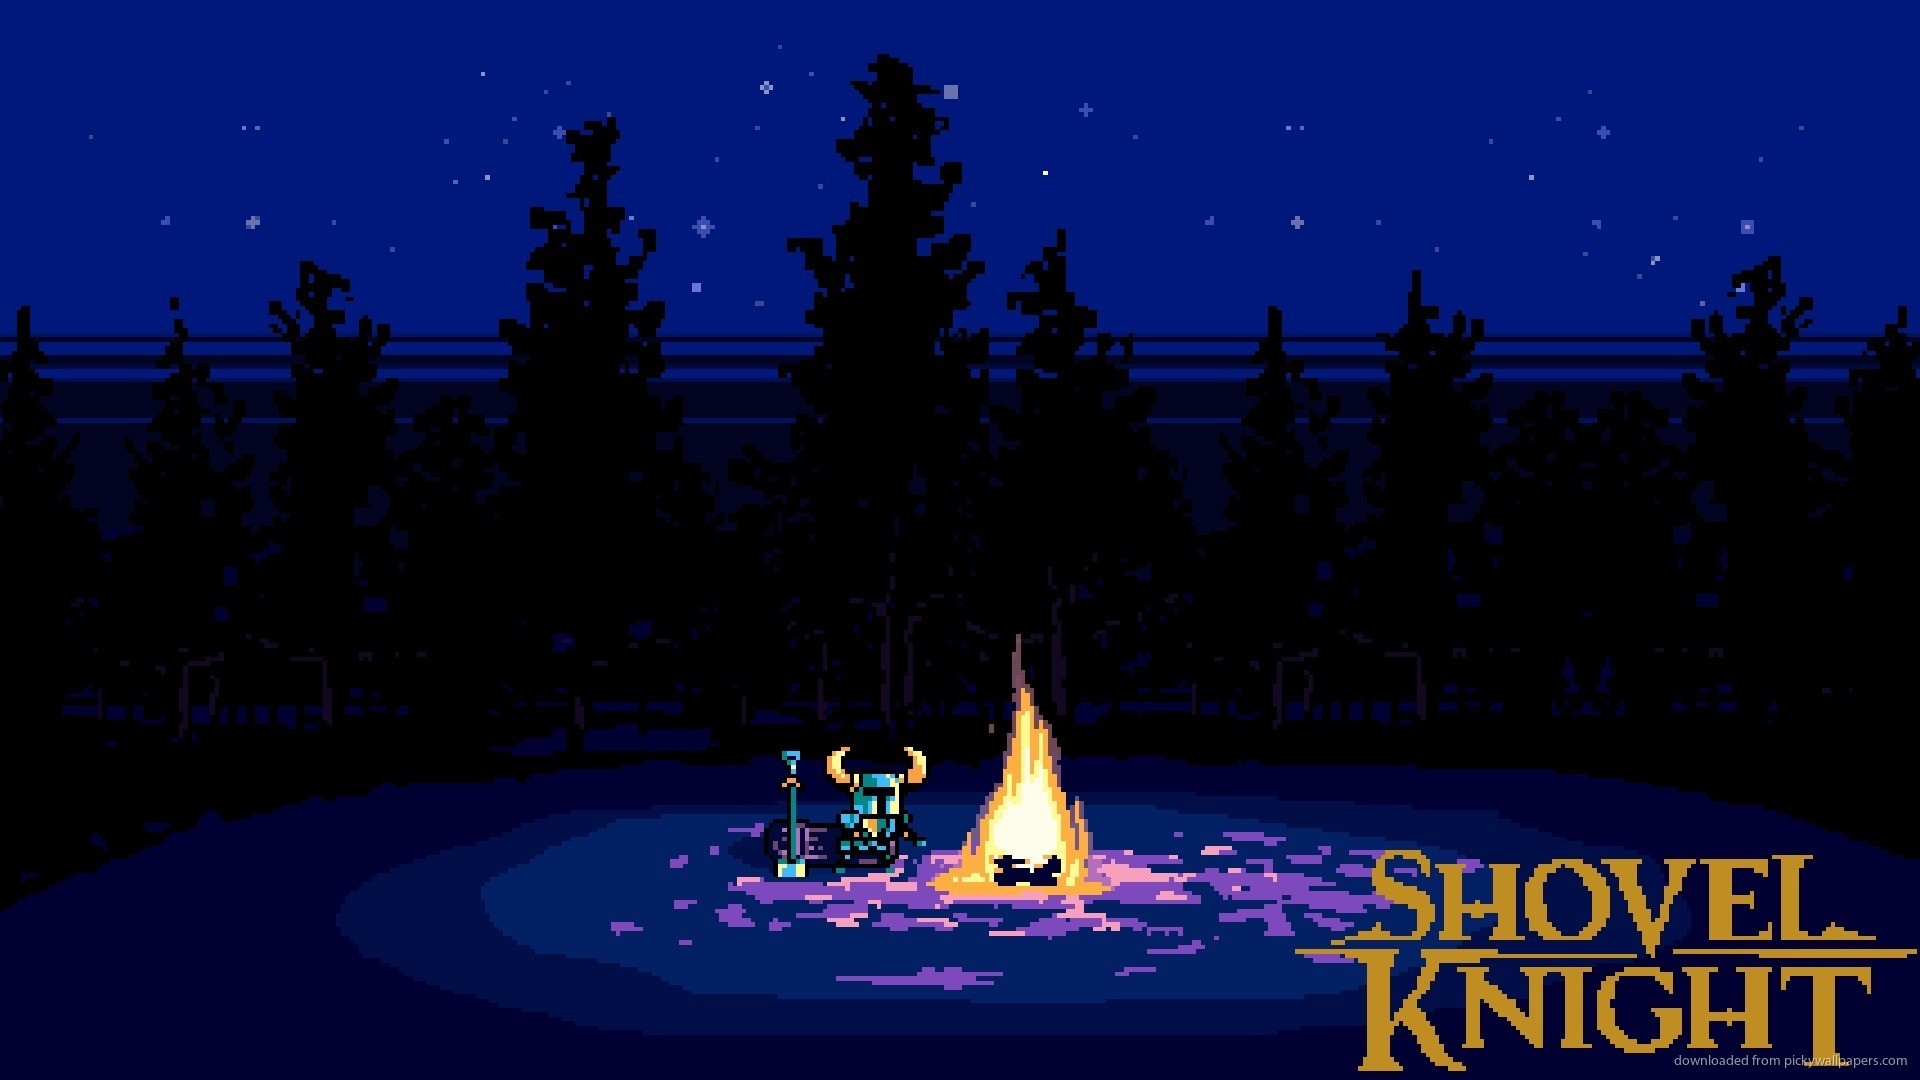 Shovel Knight Game Wallpaper picture